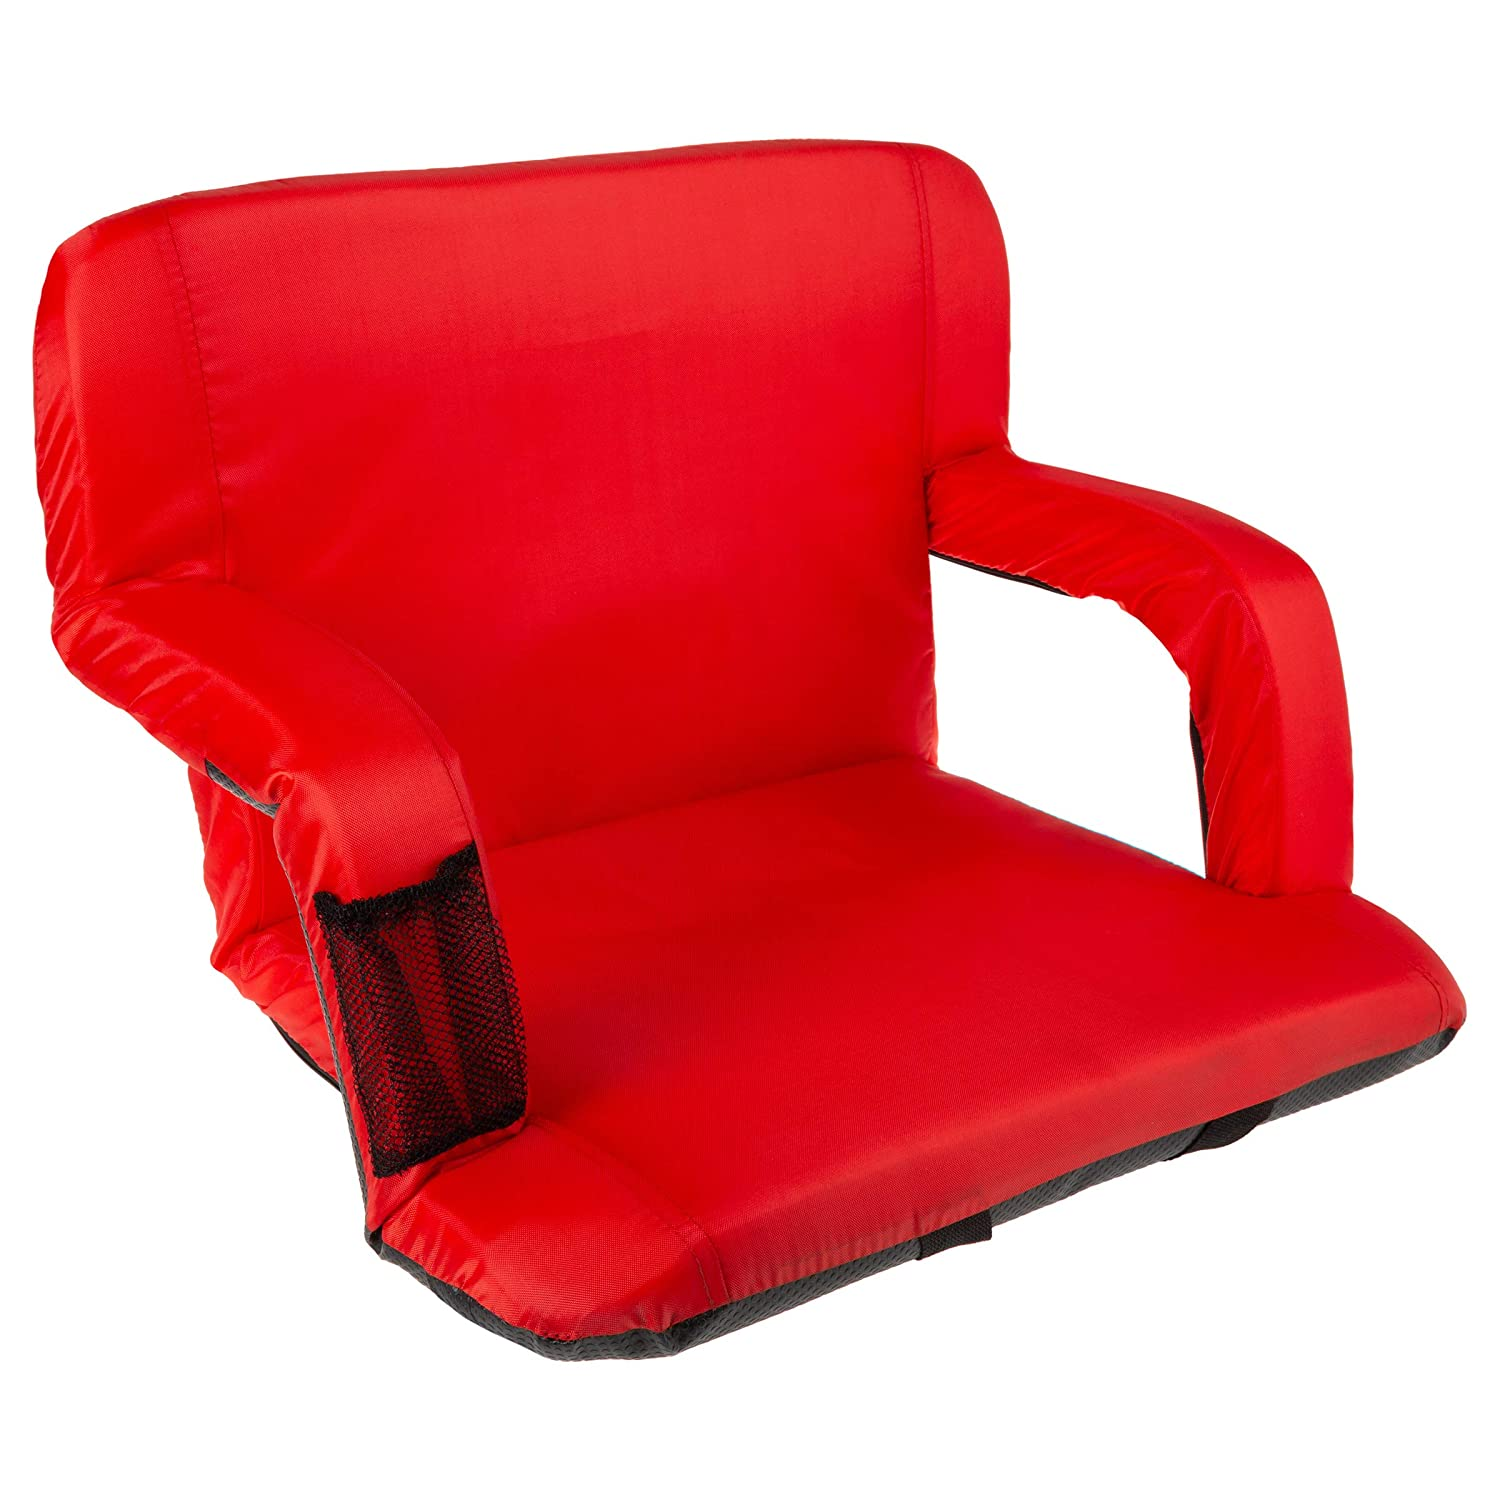 Home-Complete Stadium Seat Chair- Wide Bleacher Cushion